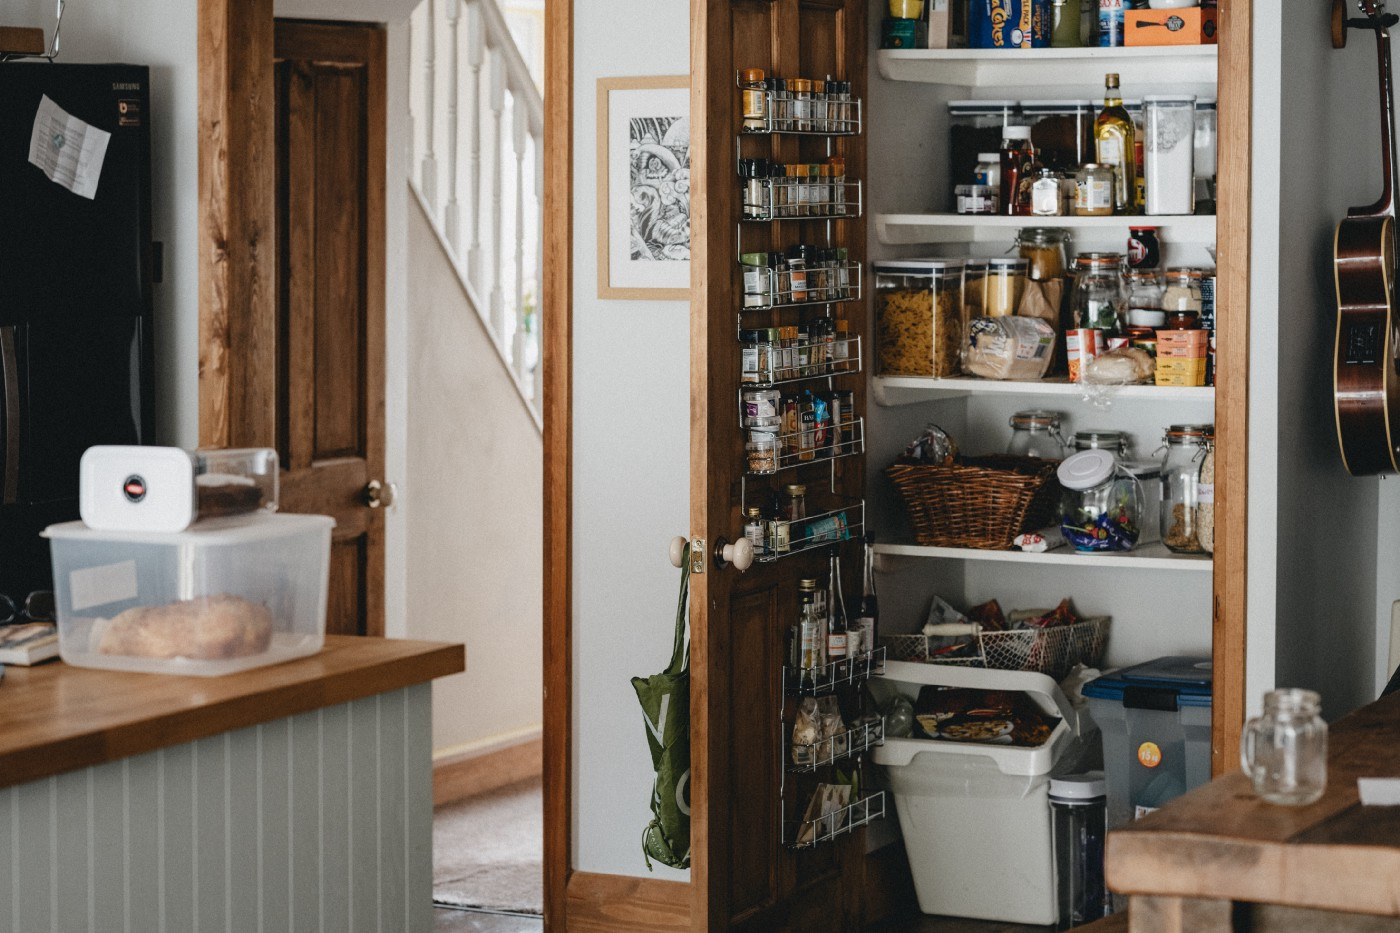 A neat farmhouse kitchen. The well-stocked pantry door is open.